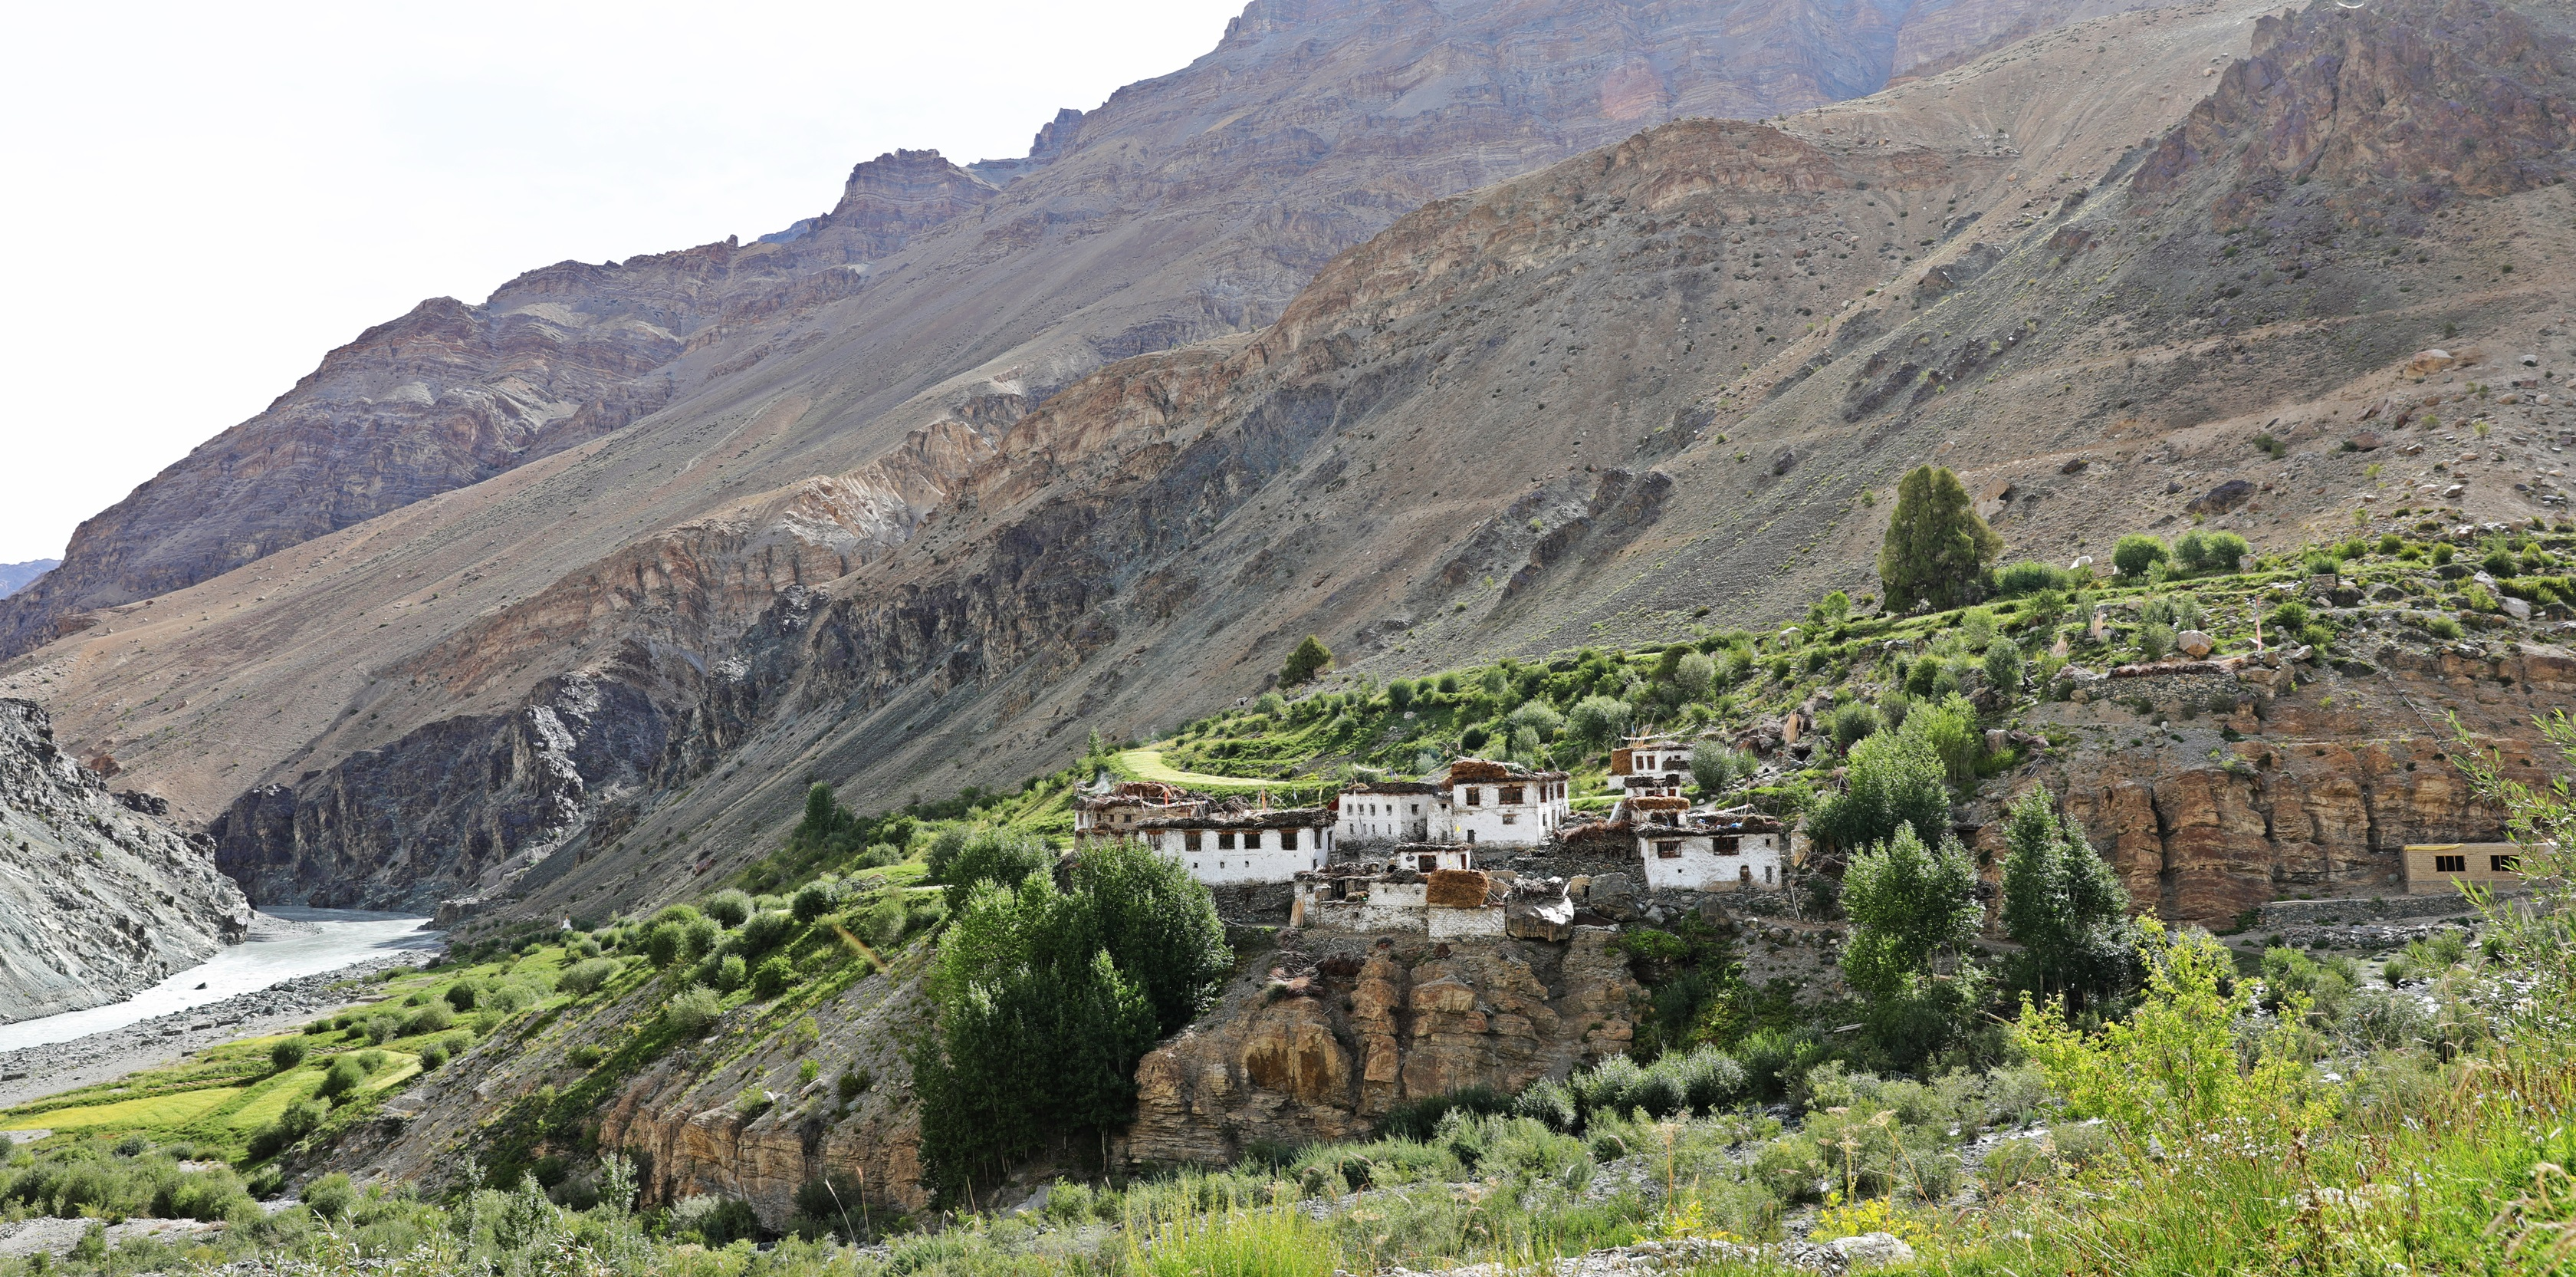 Yugar village across from Phuktal Gompa